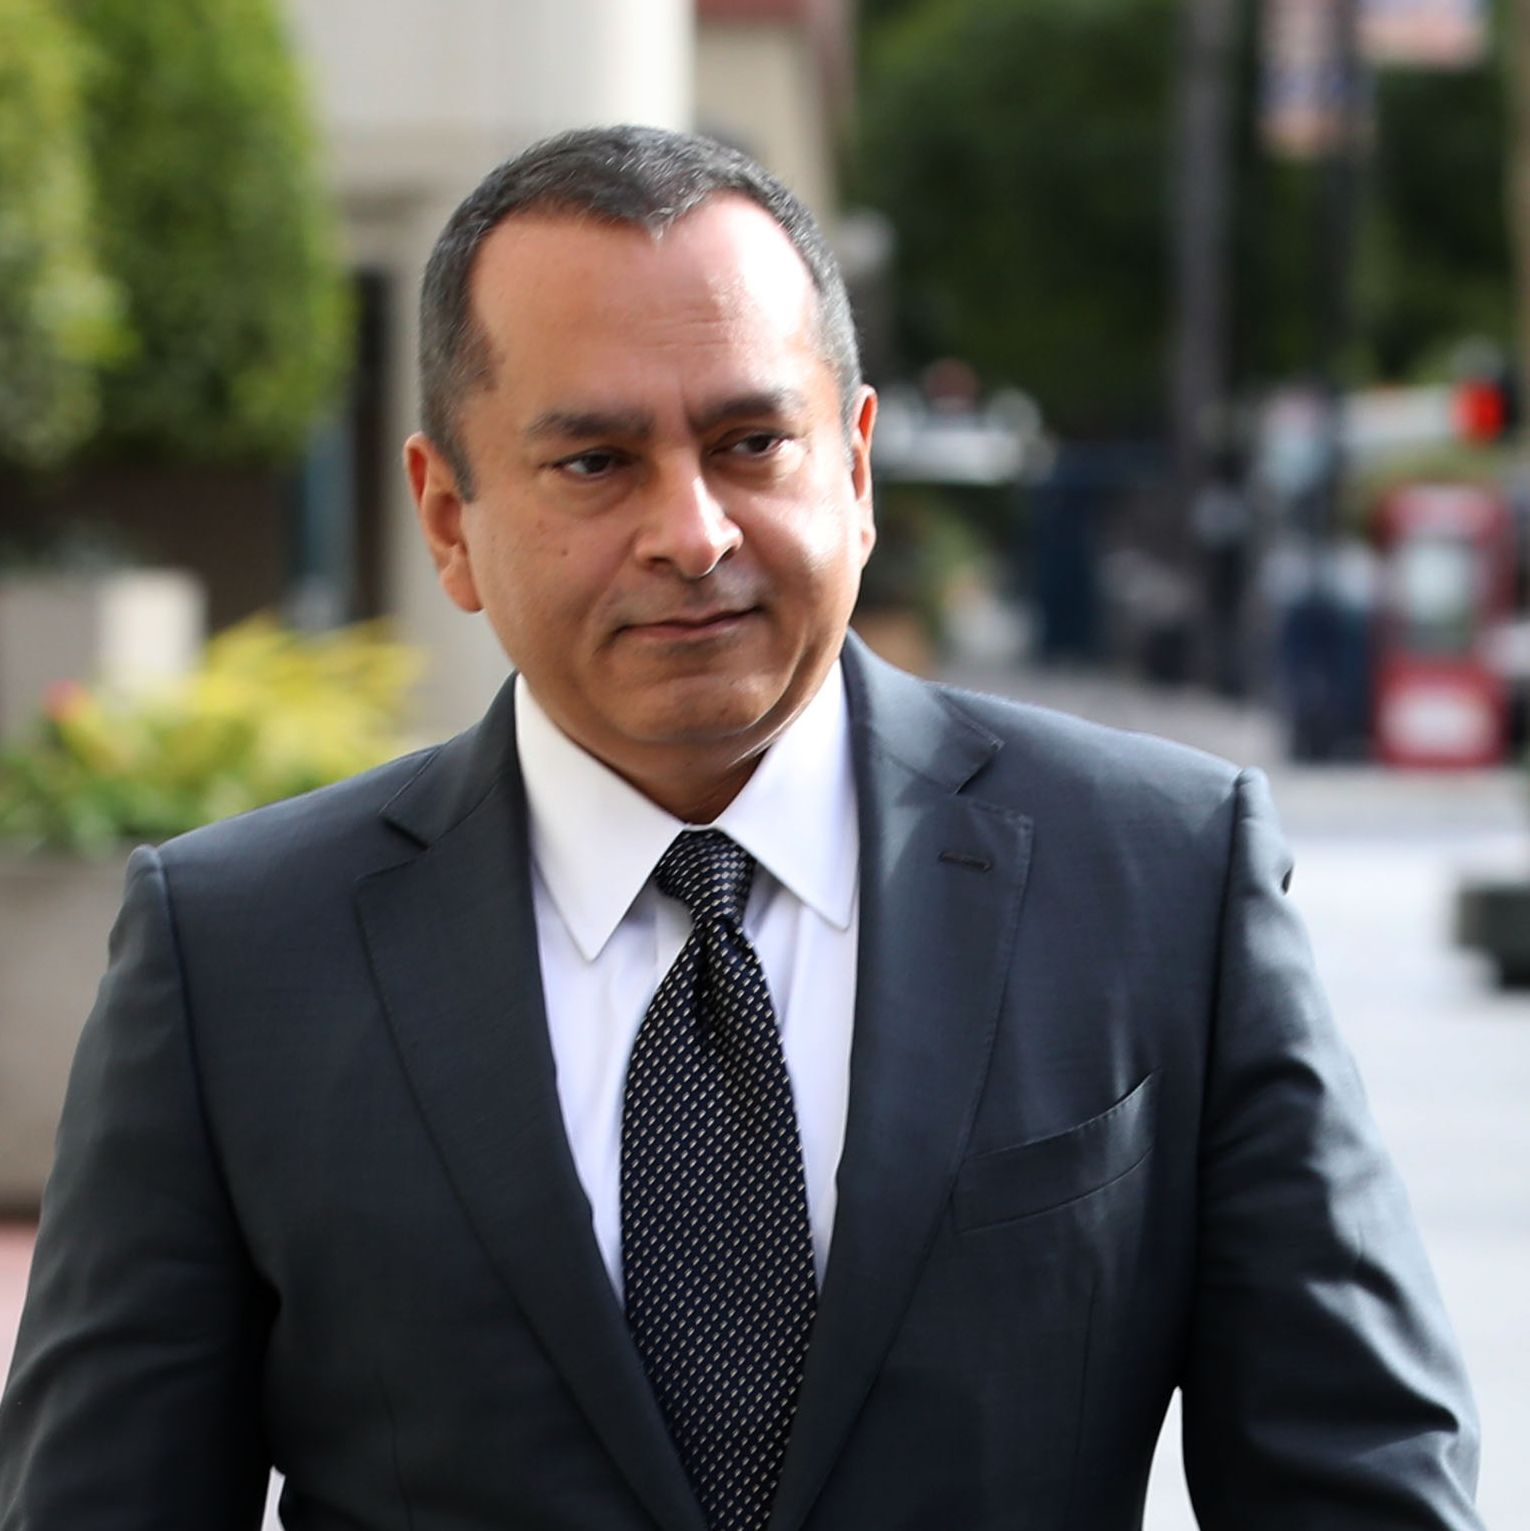 Former Theranos COO Ramesh Balwani leaves the courthouse on January 14, 2019.